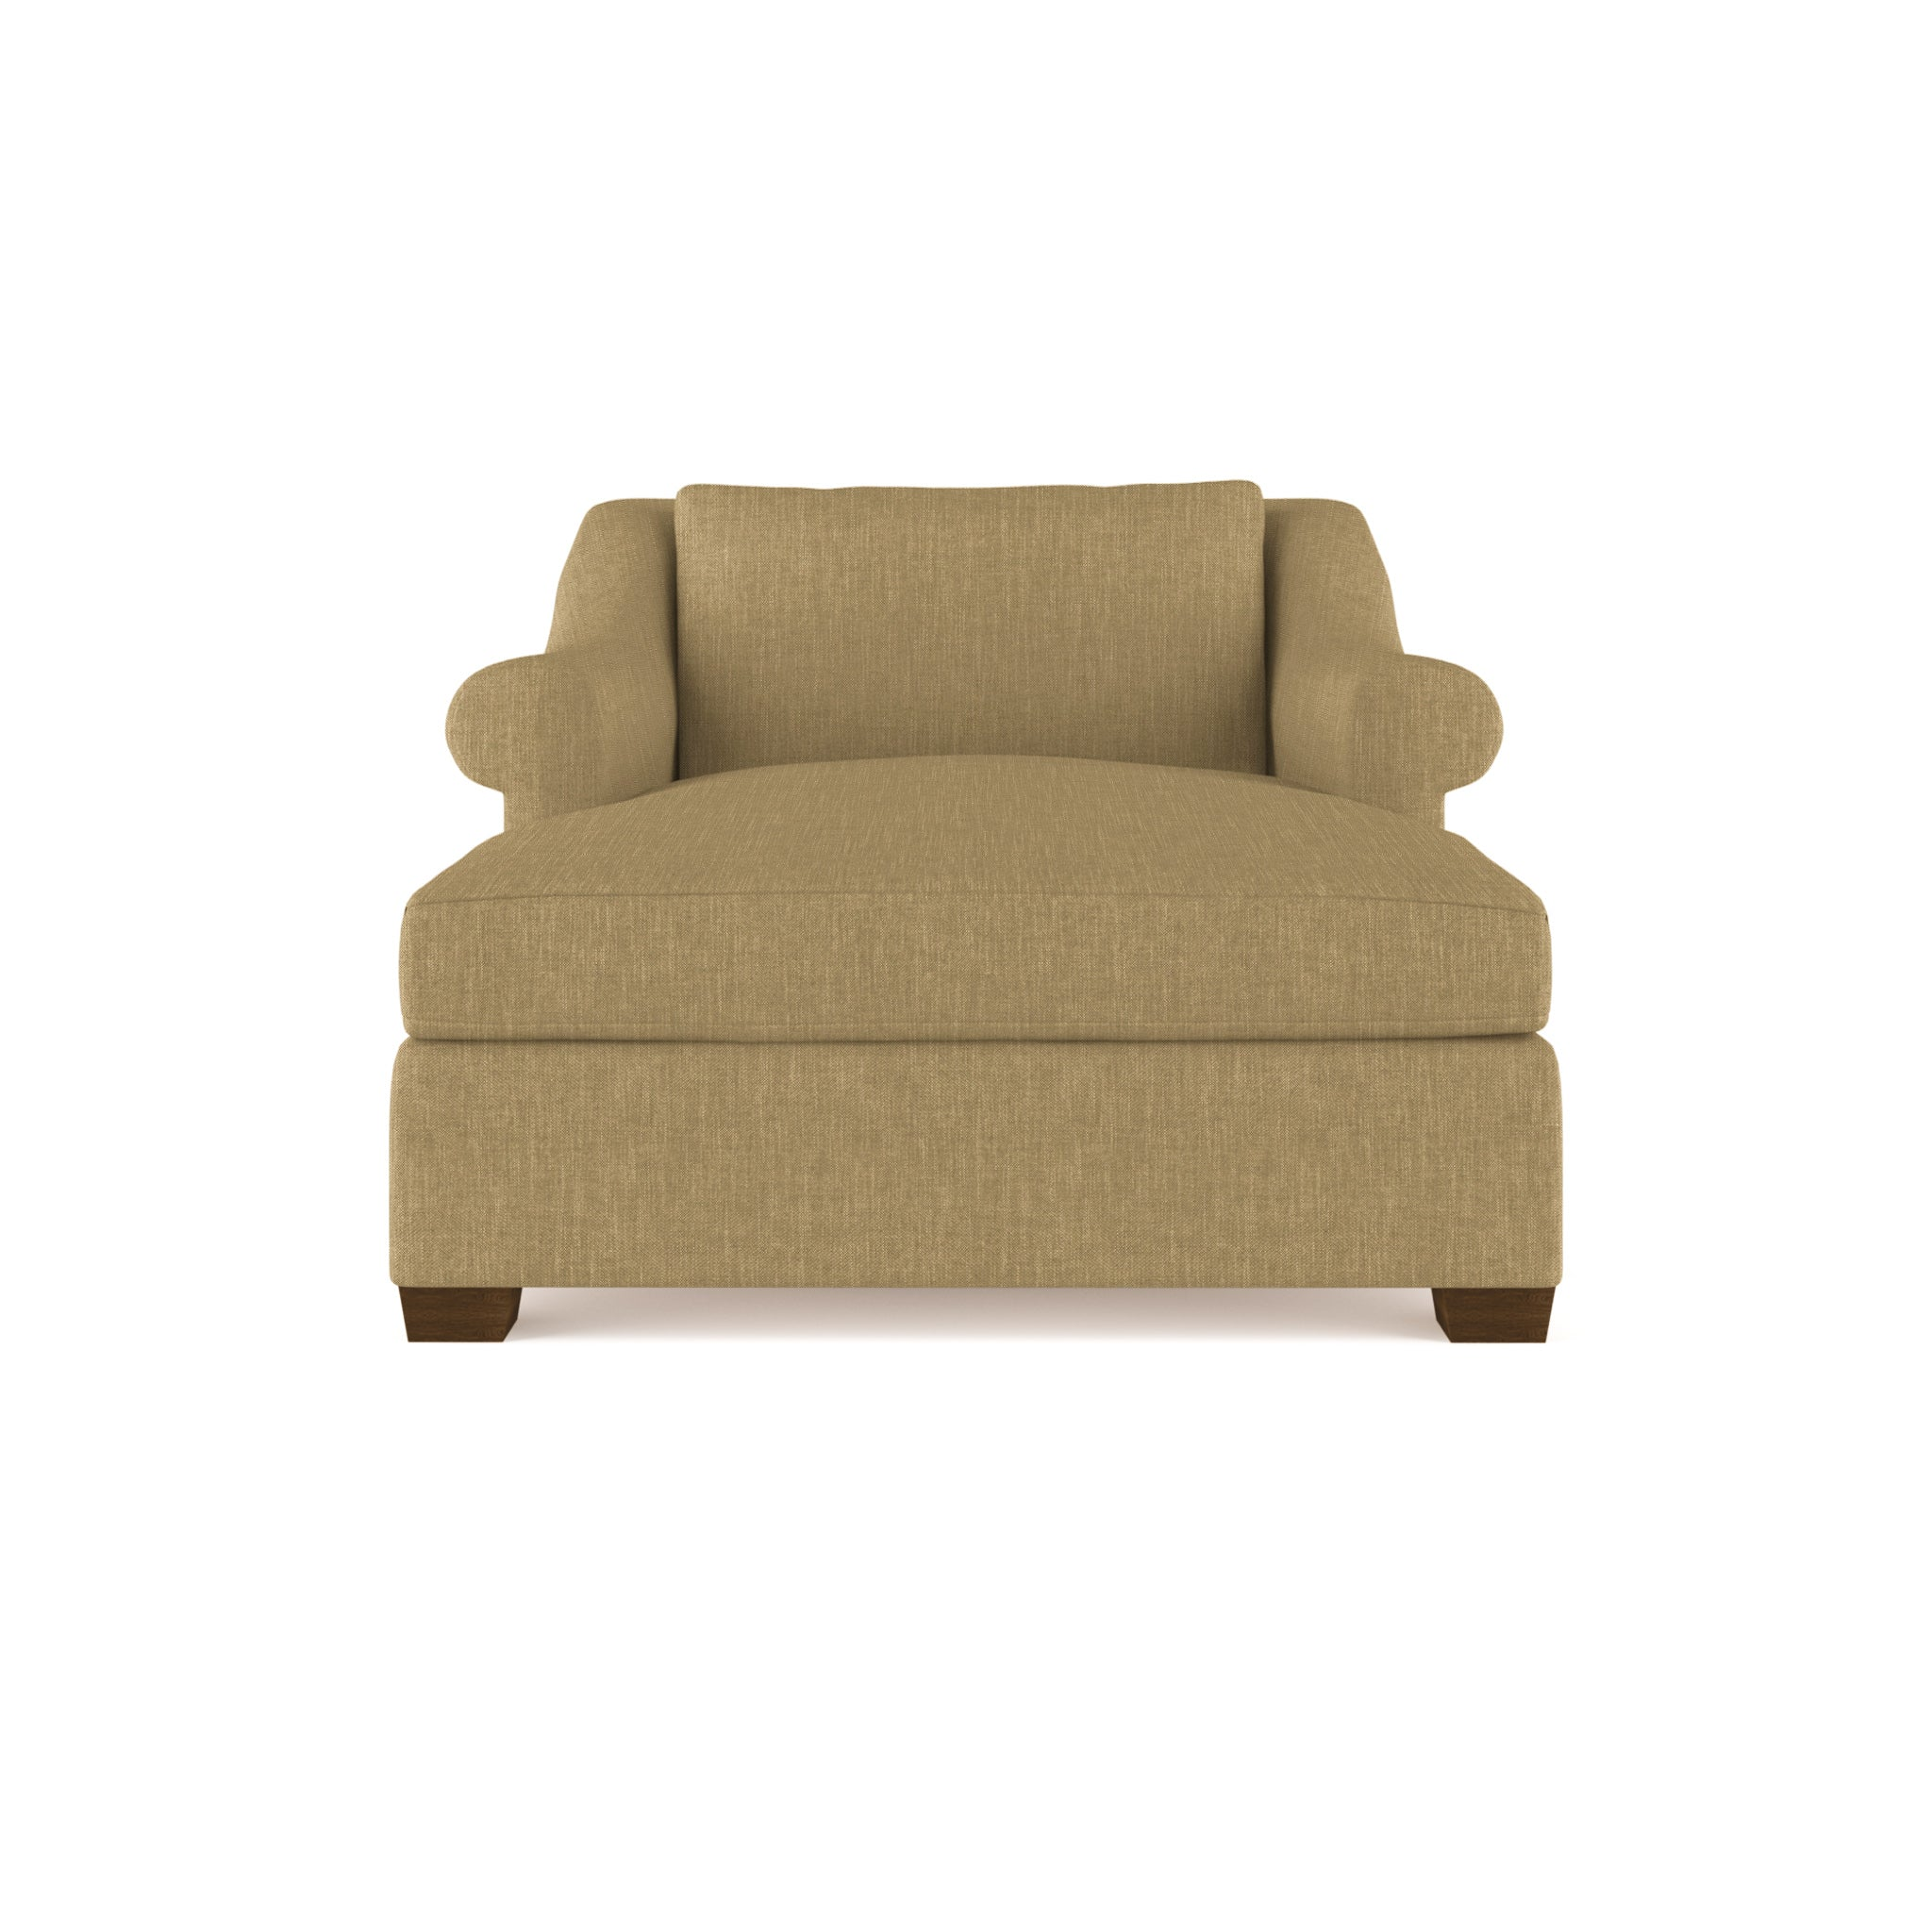 Thompson Chaise - Marzipan Box Weave Linen